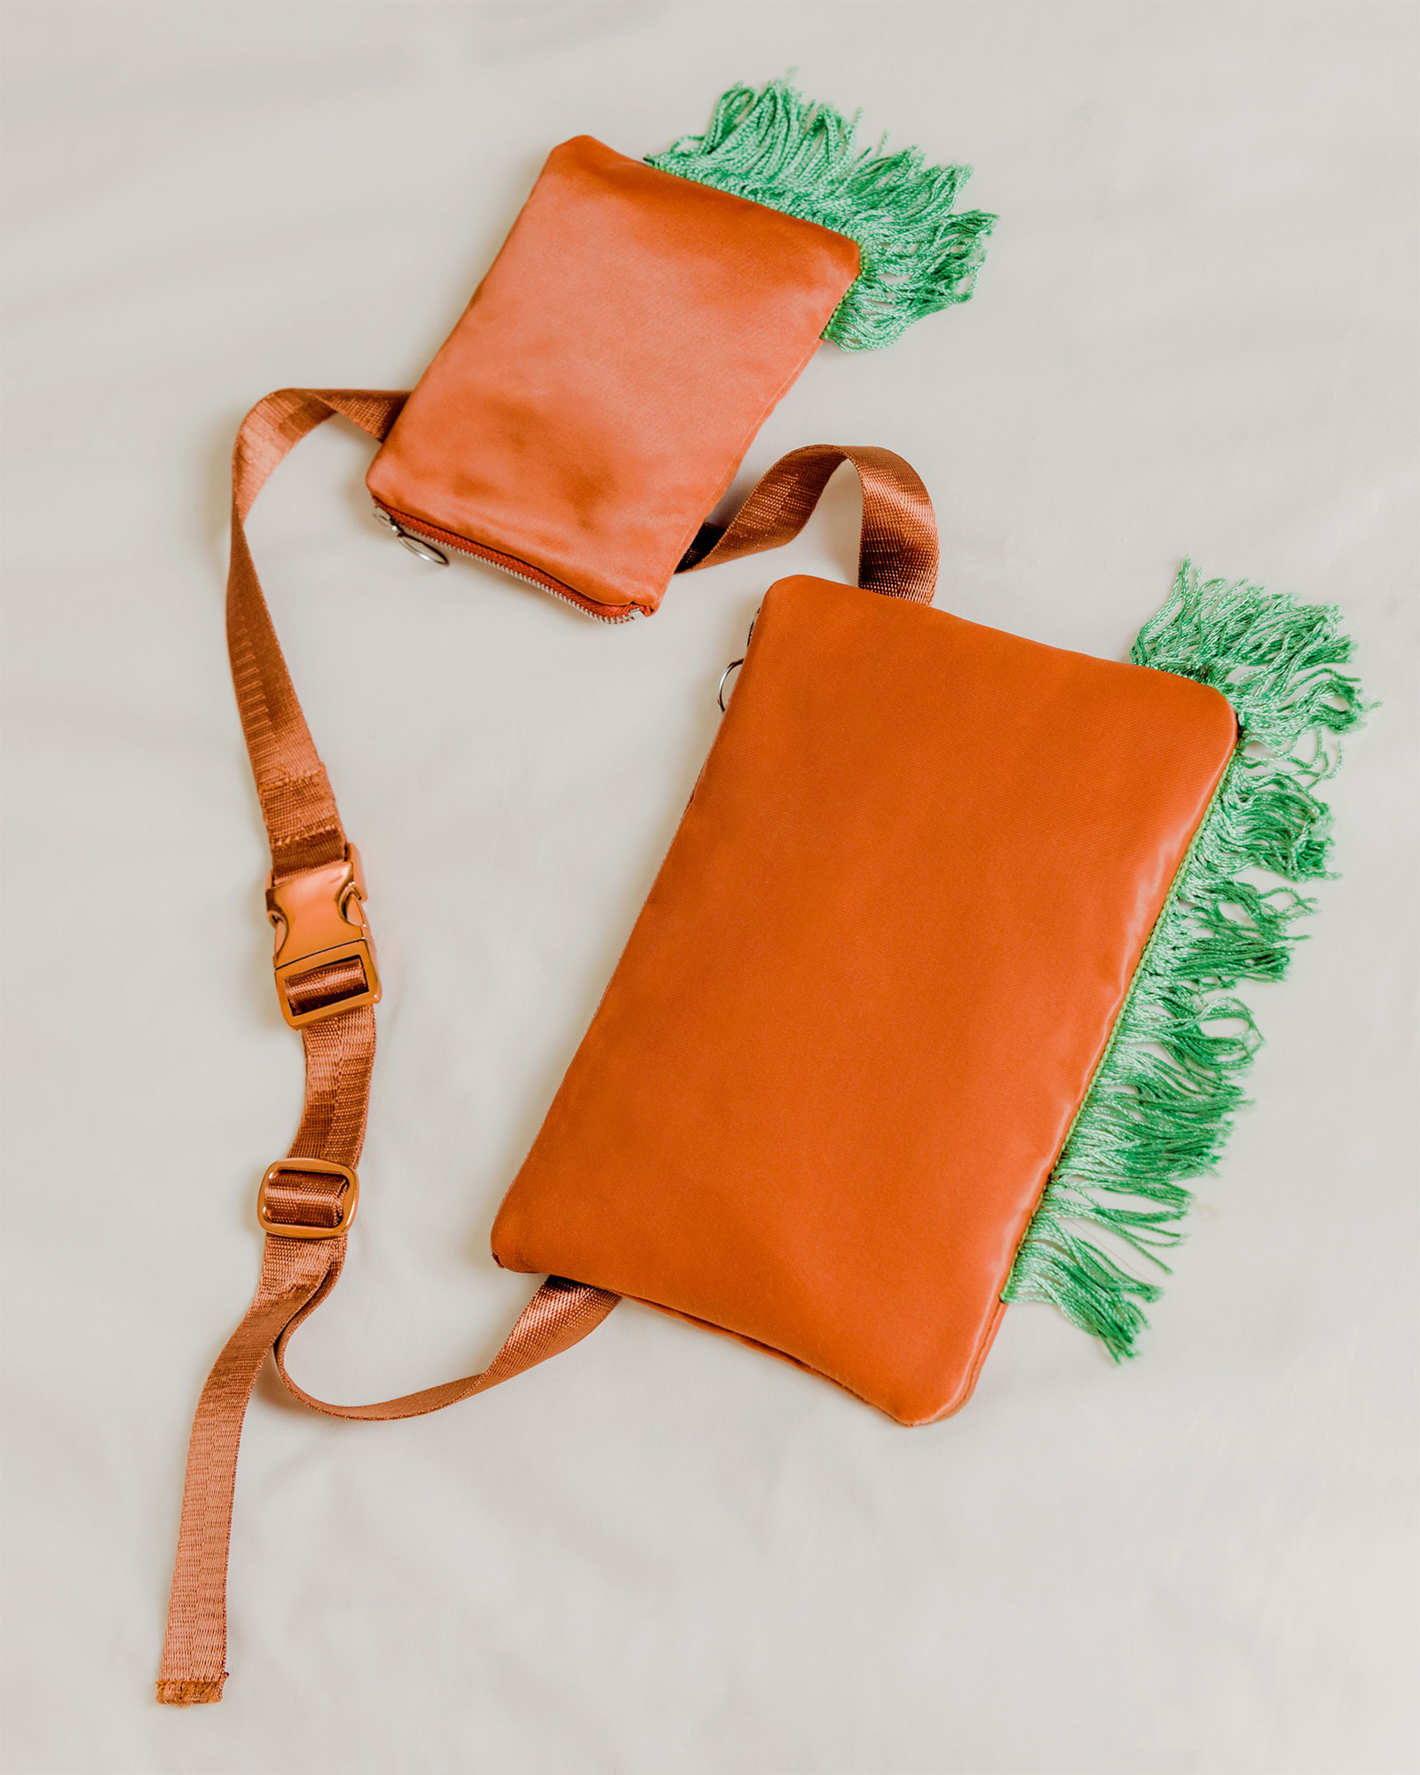 Eckhaus Latta x HotelTonight Travel Kit